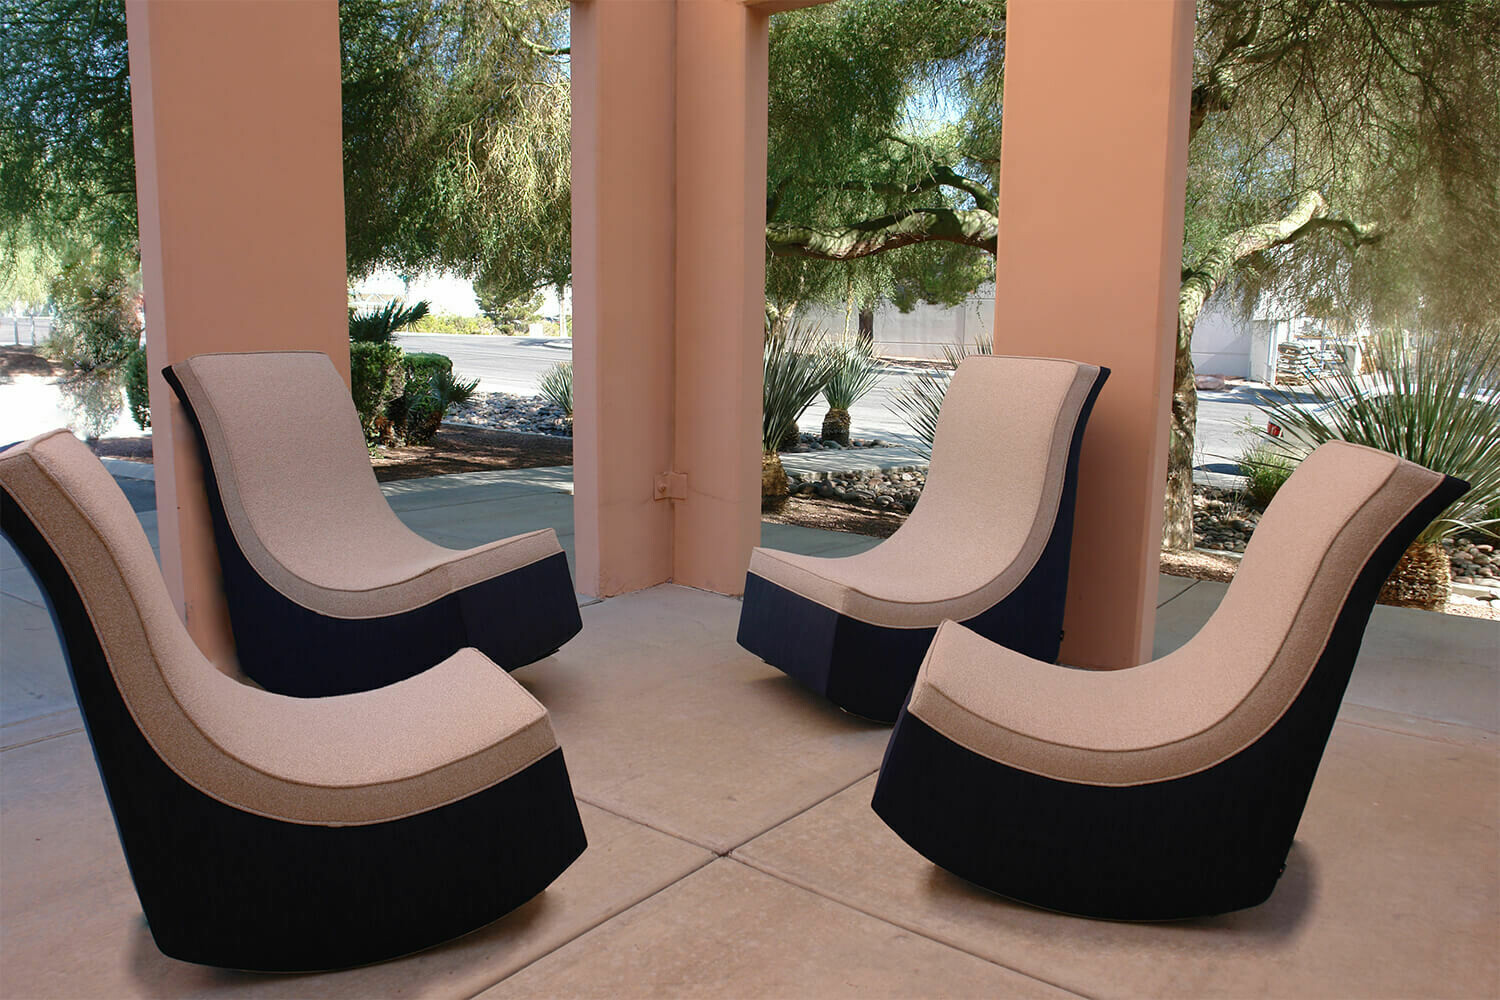 Resort Style 4 piece Chair Set-4 Rocking Lounge Chairs